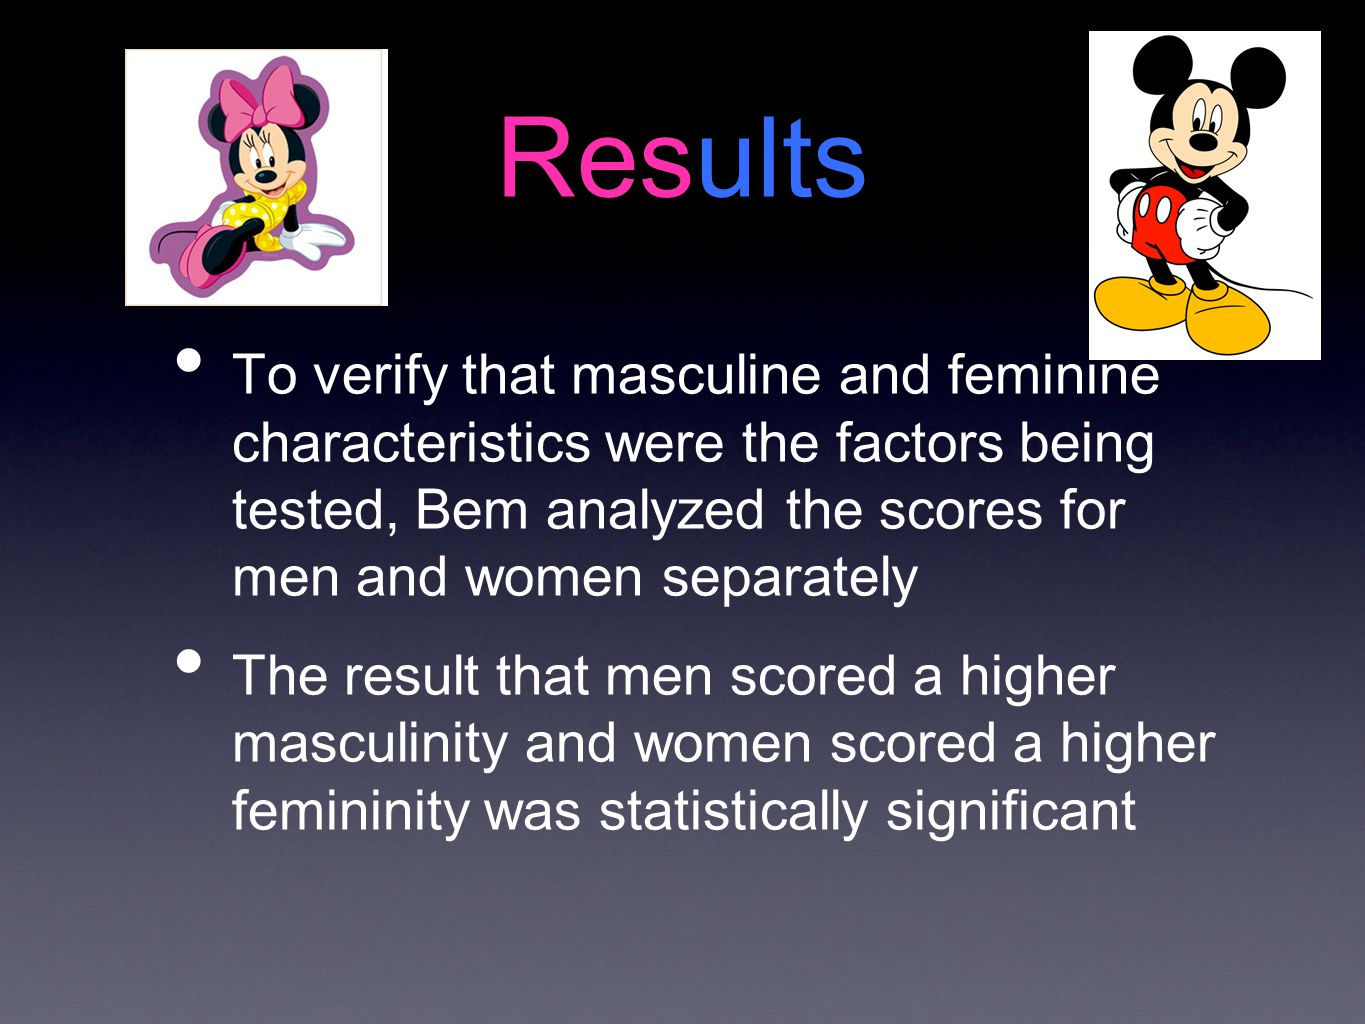 Results To verify that masculine and feminine characteristics were the factors being tested, Bem analyzed the scores for men and women separately.